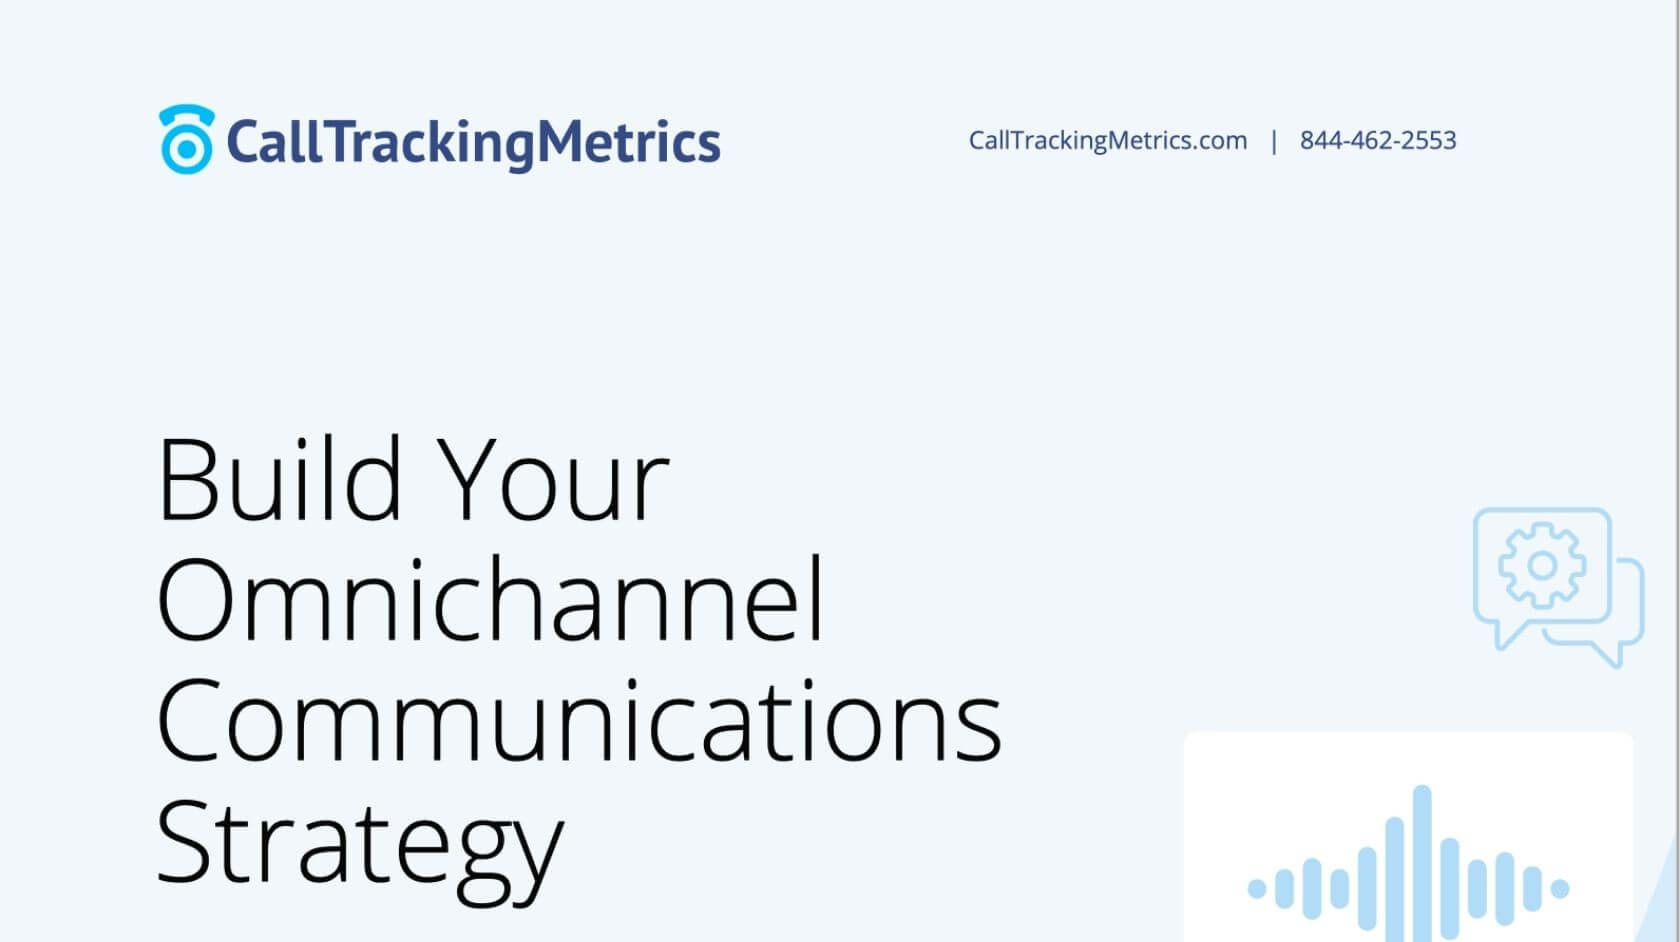 Build Your Omnichannel Communications Strategy